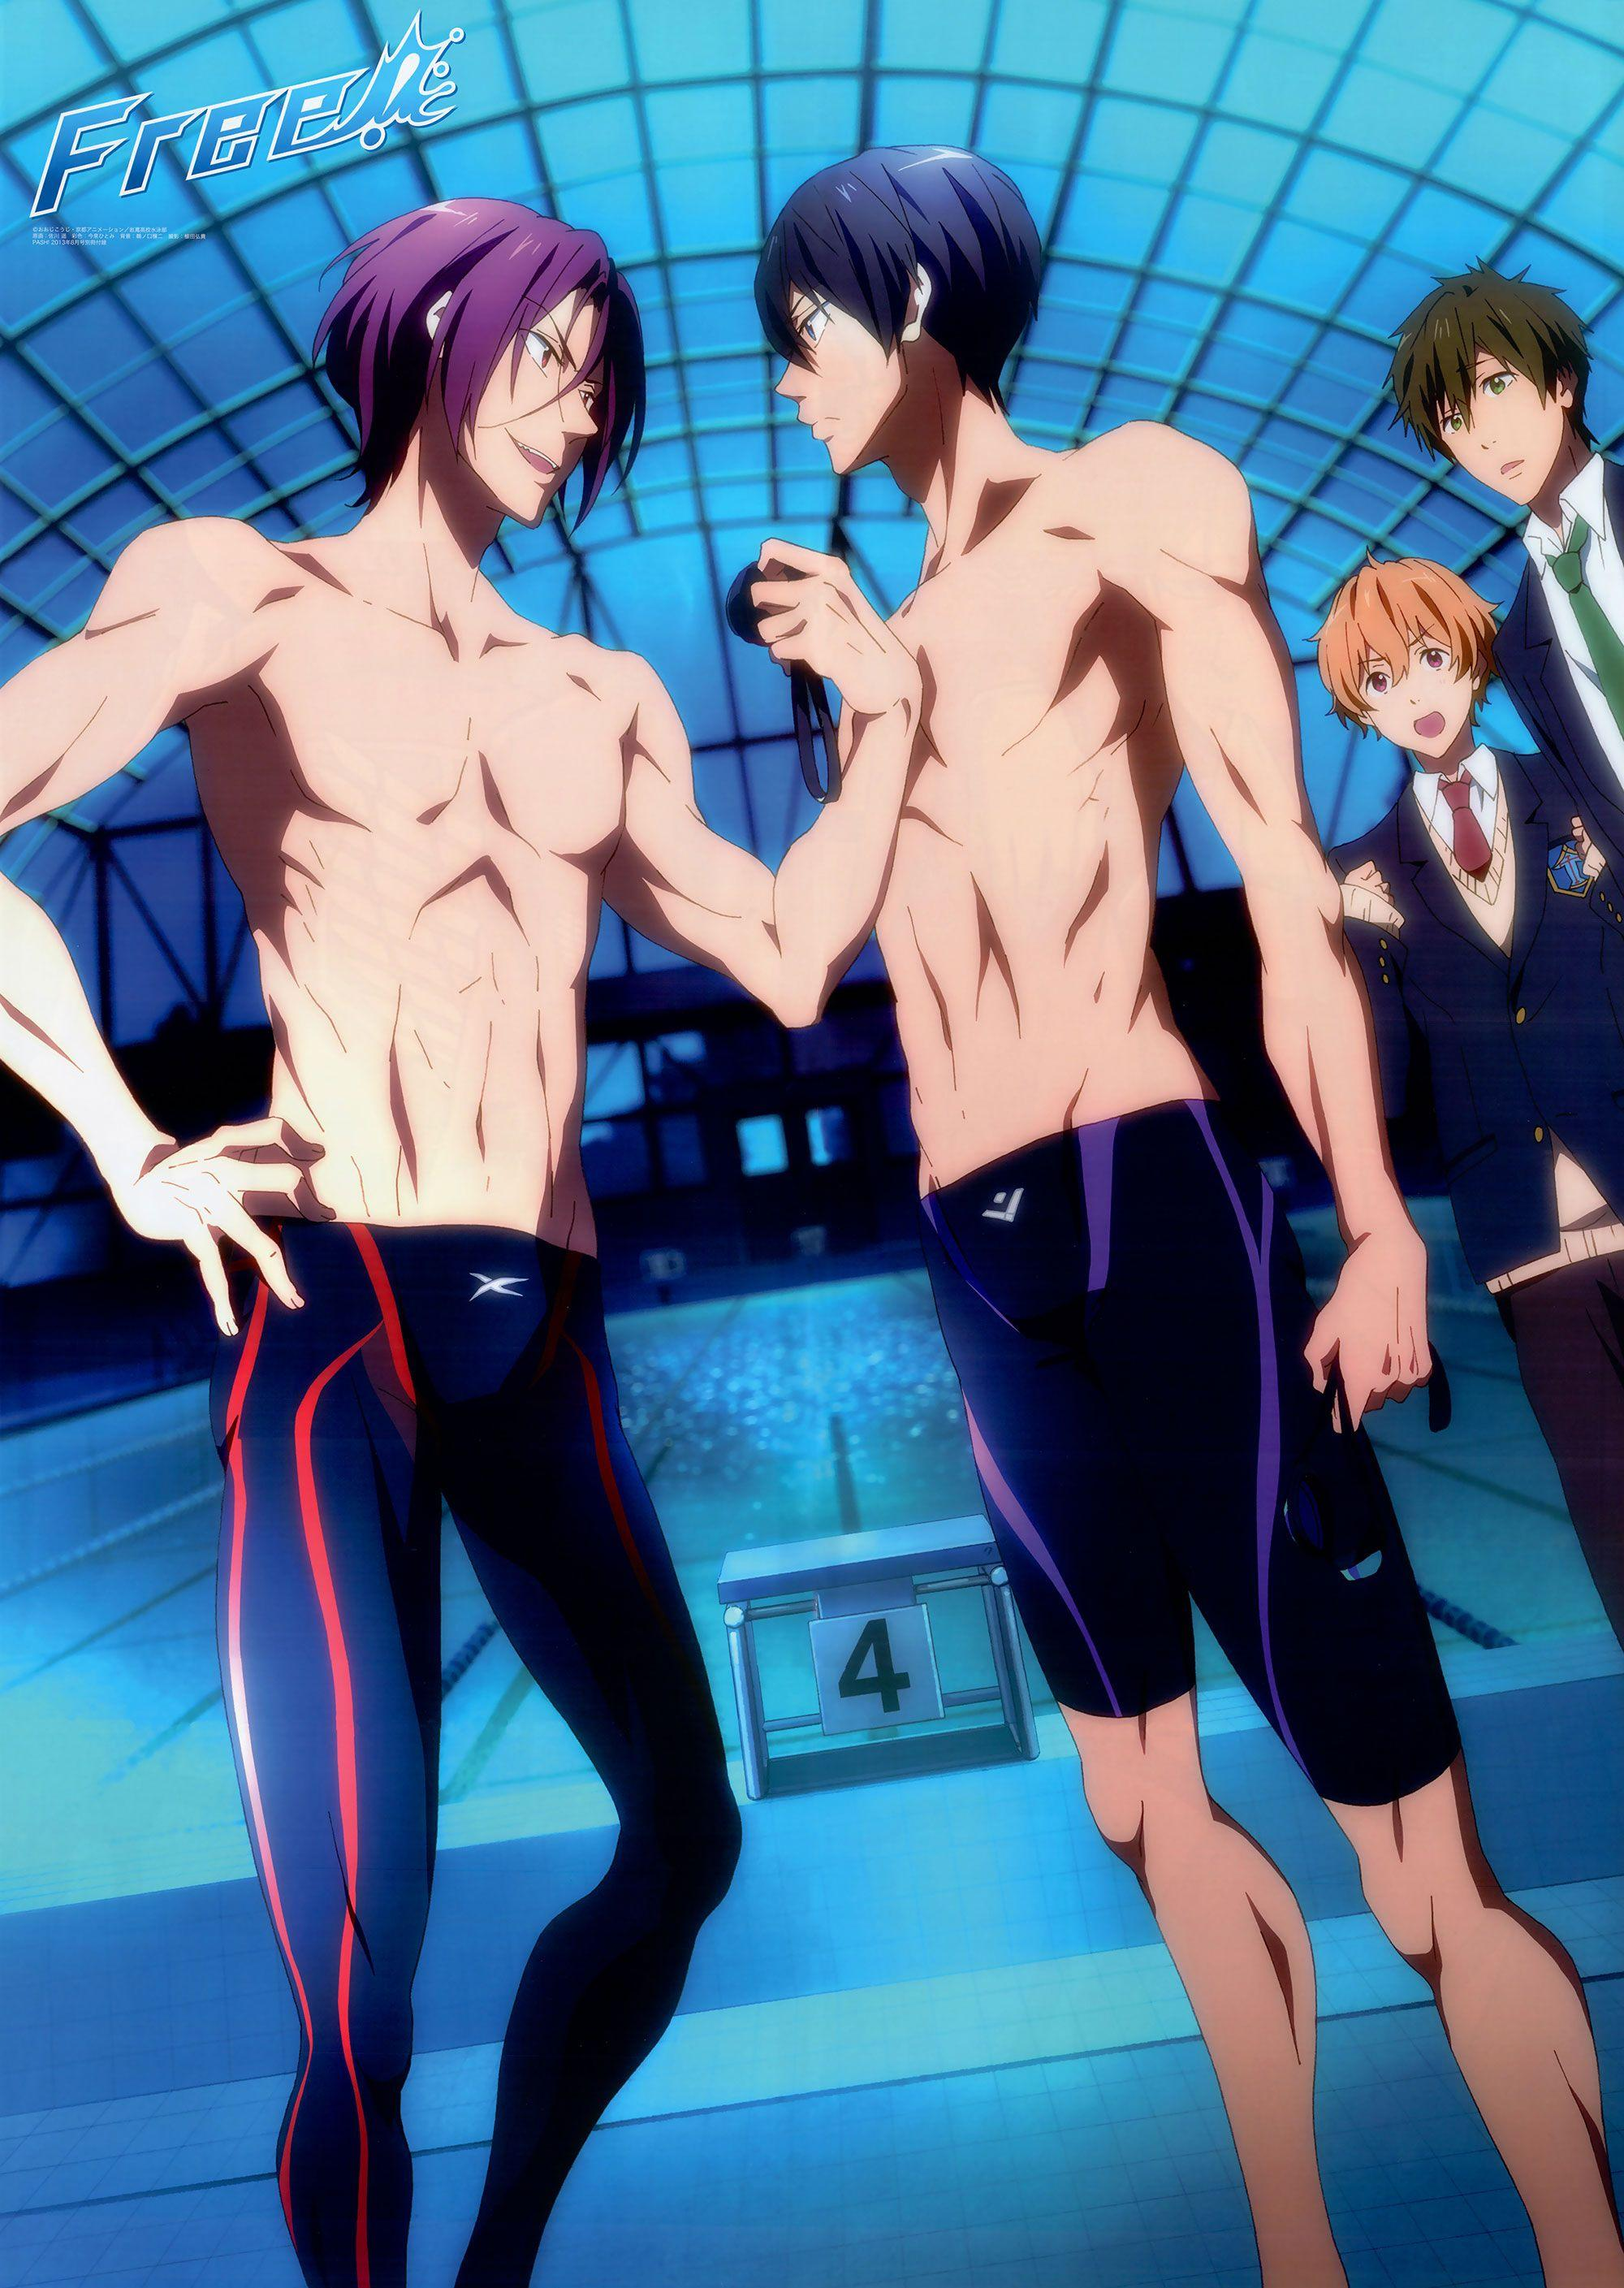 Haruka Nanase Wallpapers Wallpaper Cave See what rin matsuoka (rmatsuoka) has discovered on pinterest, the world's biggest collection of ideas. haruka nanase wallpapers wallpaper cave